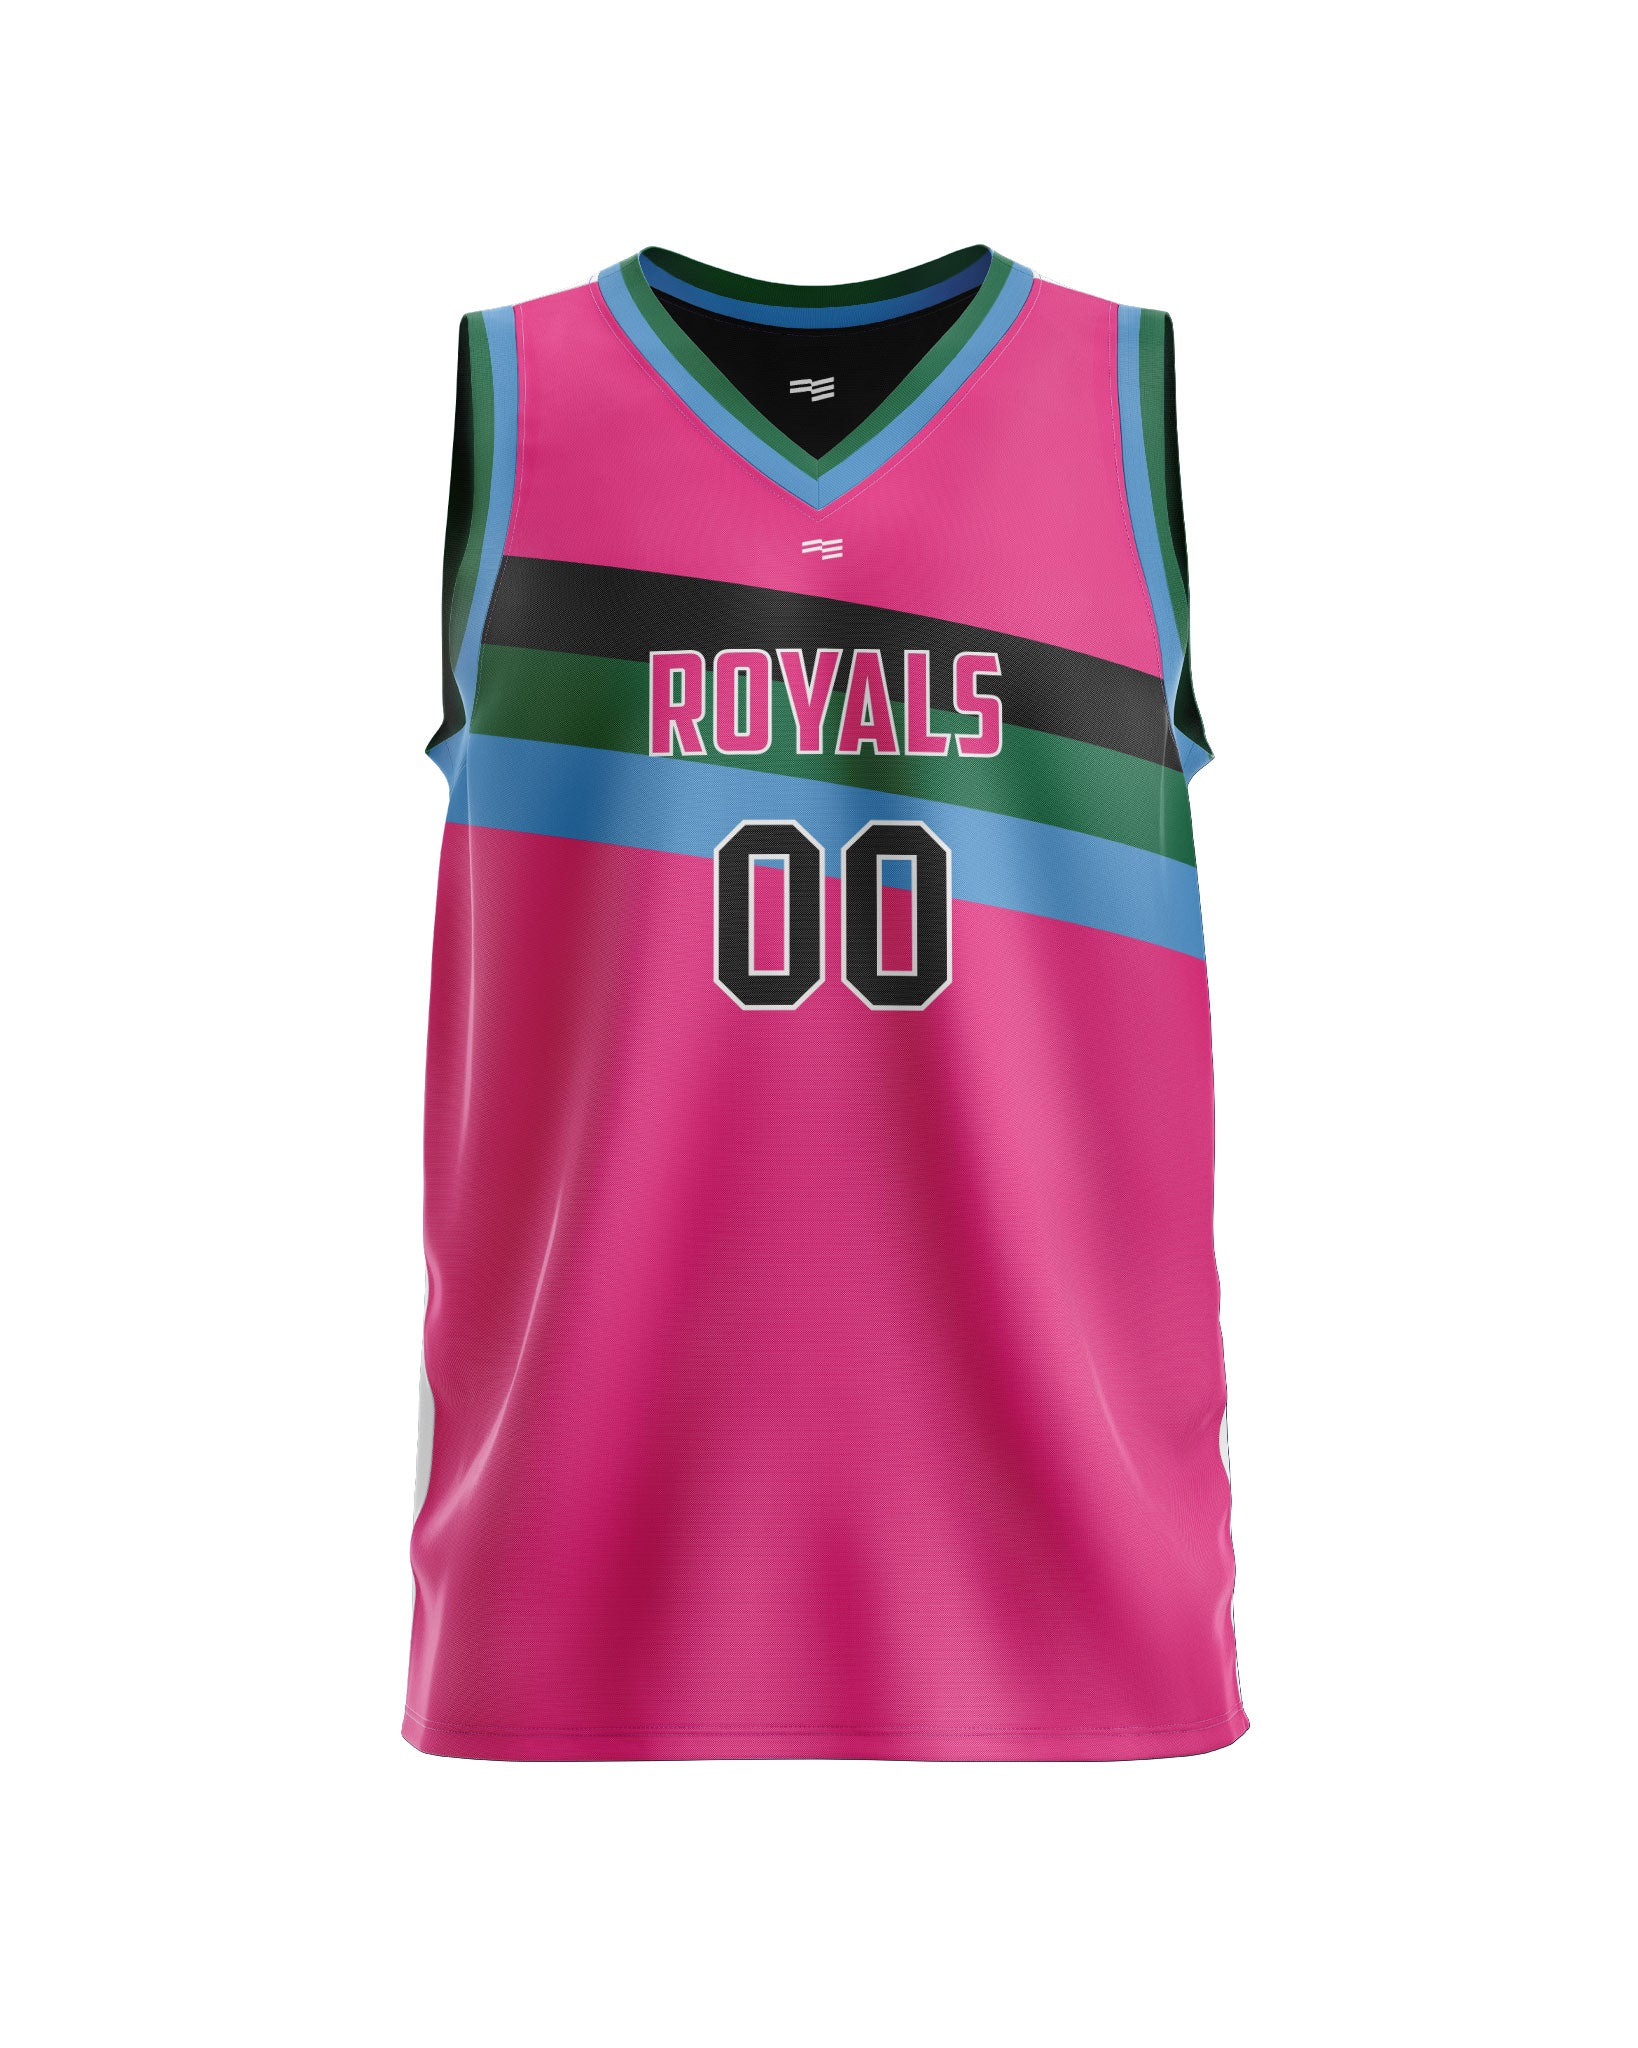 Royals Reversible Jersey - Mens